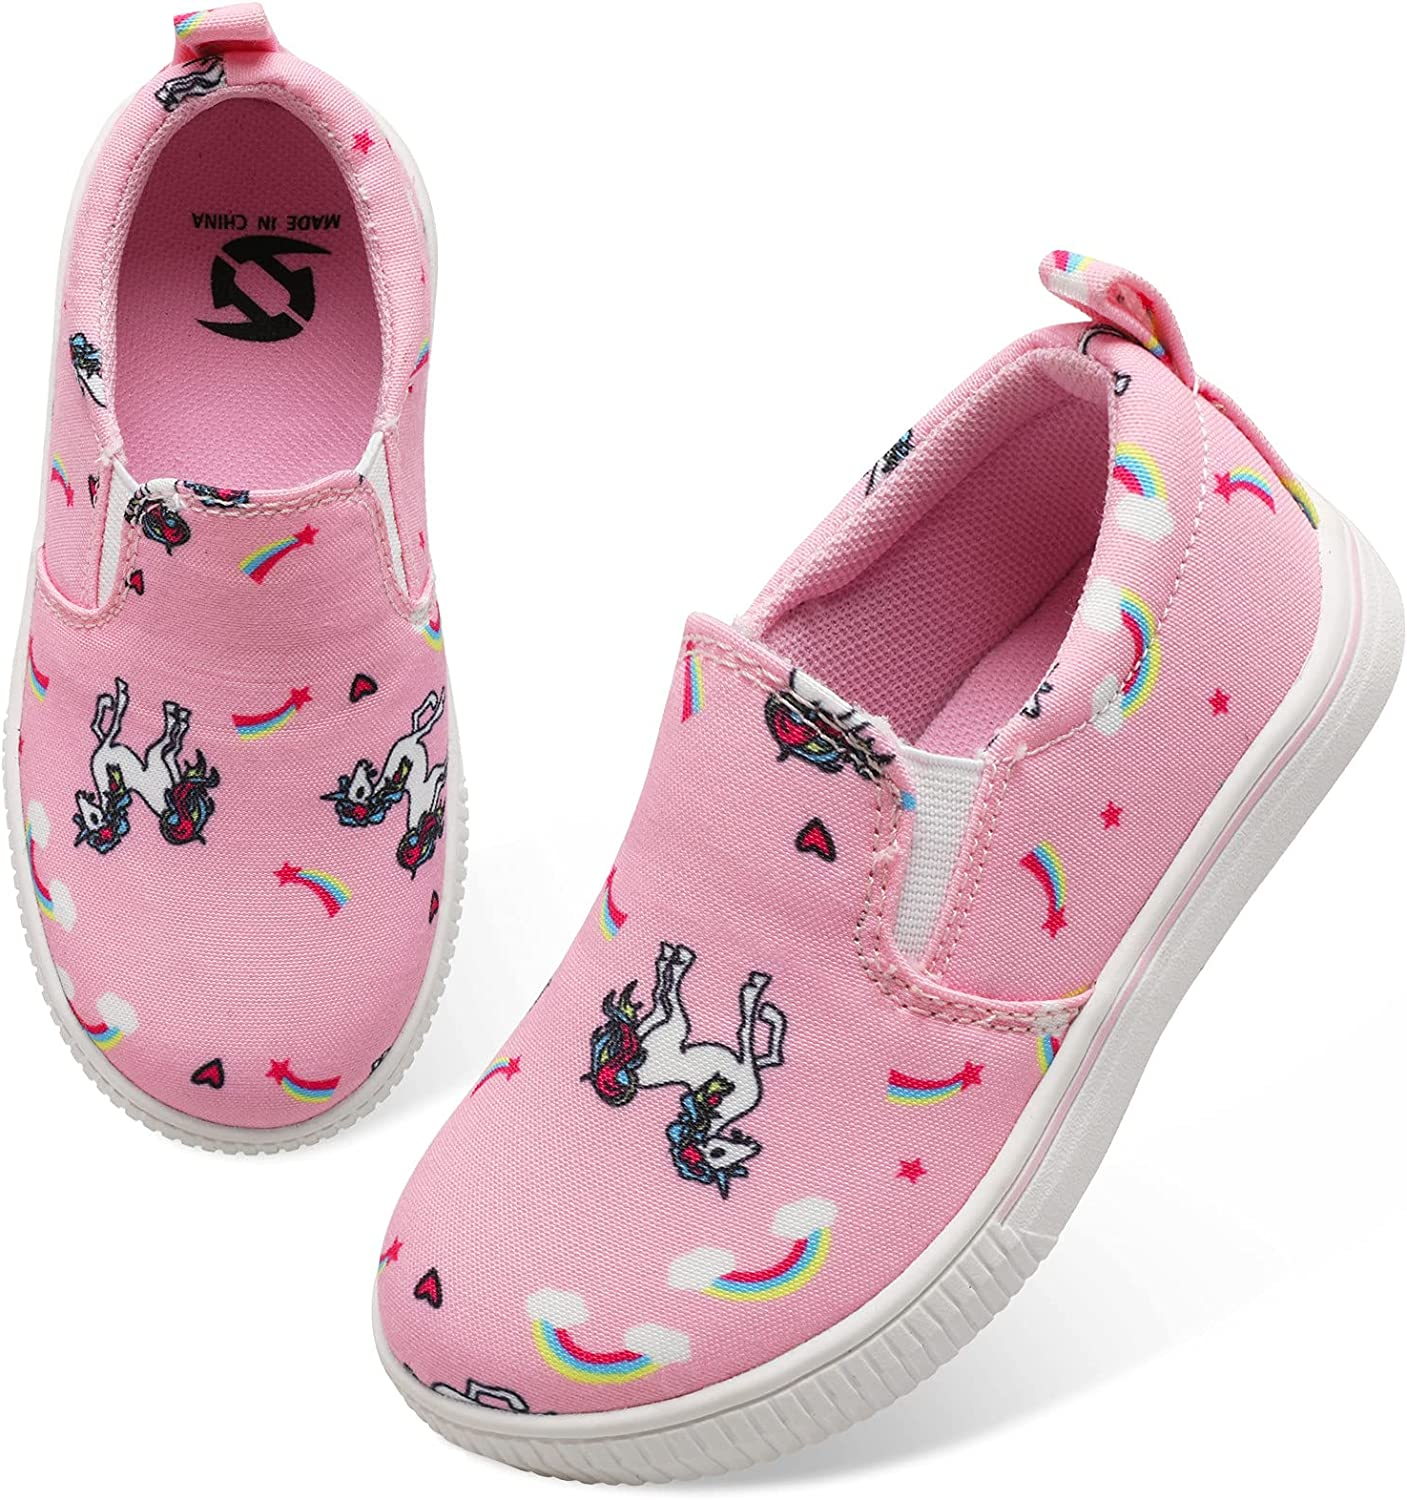 JIASUQI Comfortable Casual Canvas Slip on Fahion Sneakers for Baby Girls Boys Sports Running Shoes Pink Horse 5 Infant